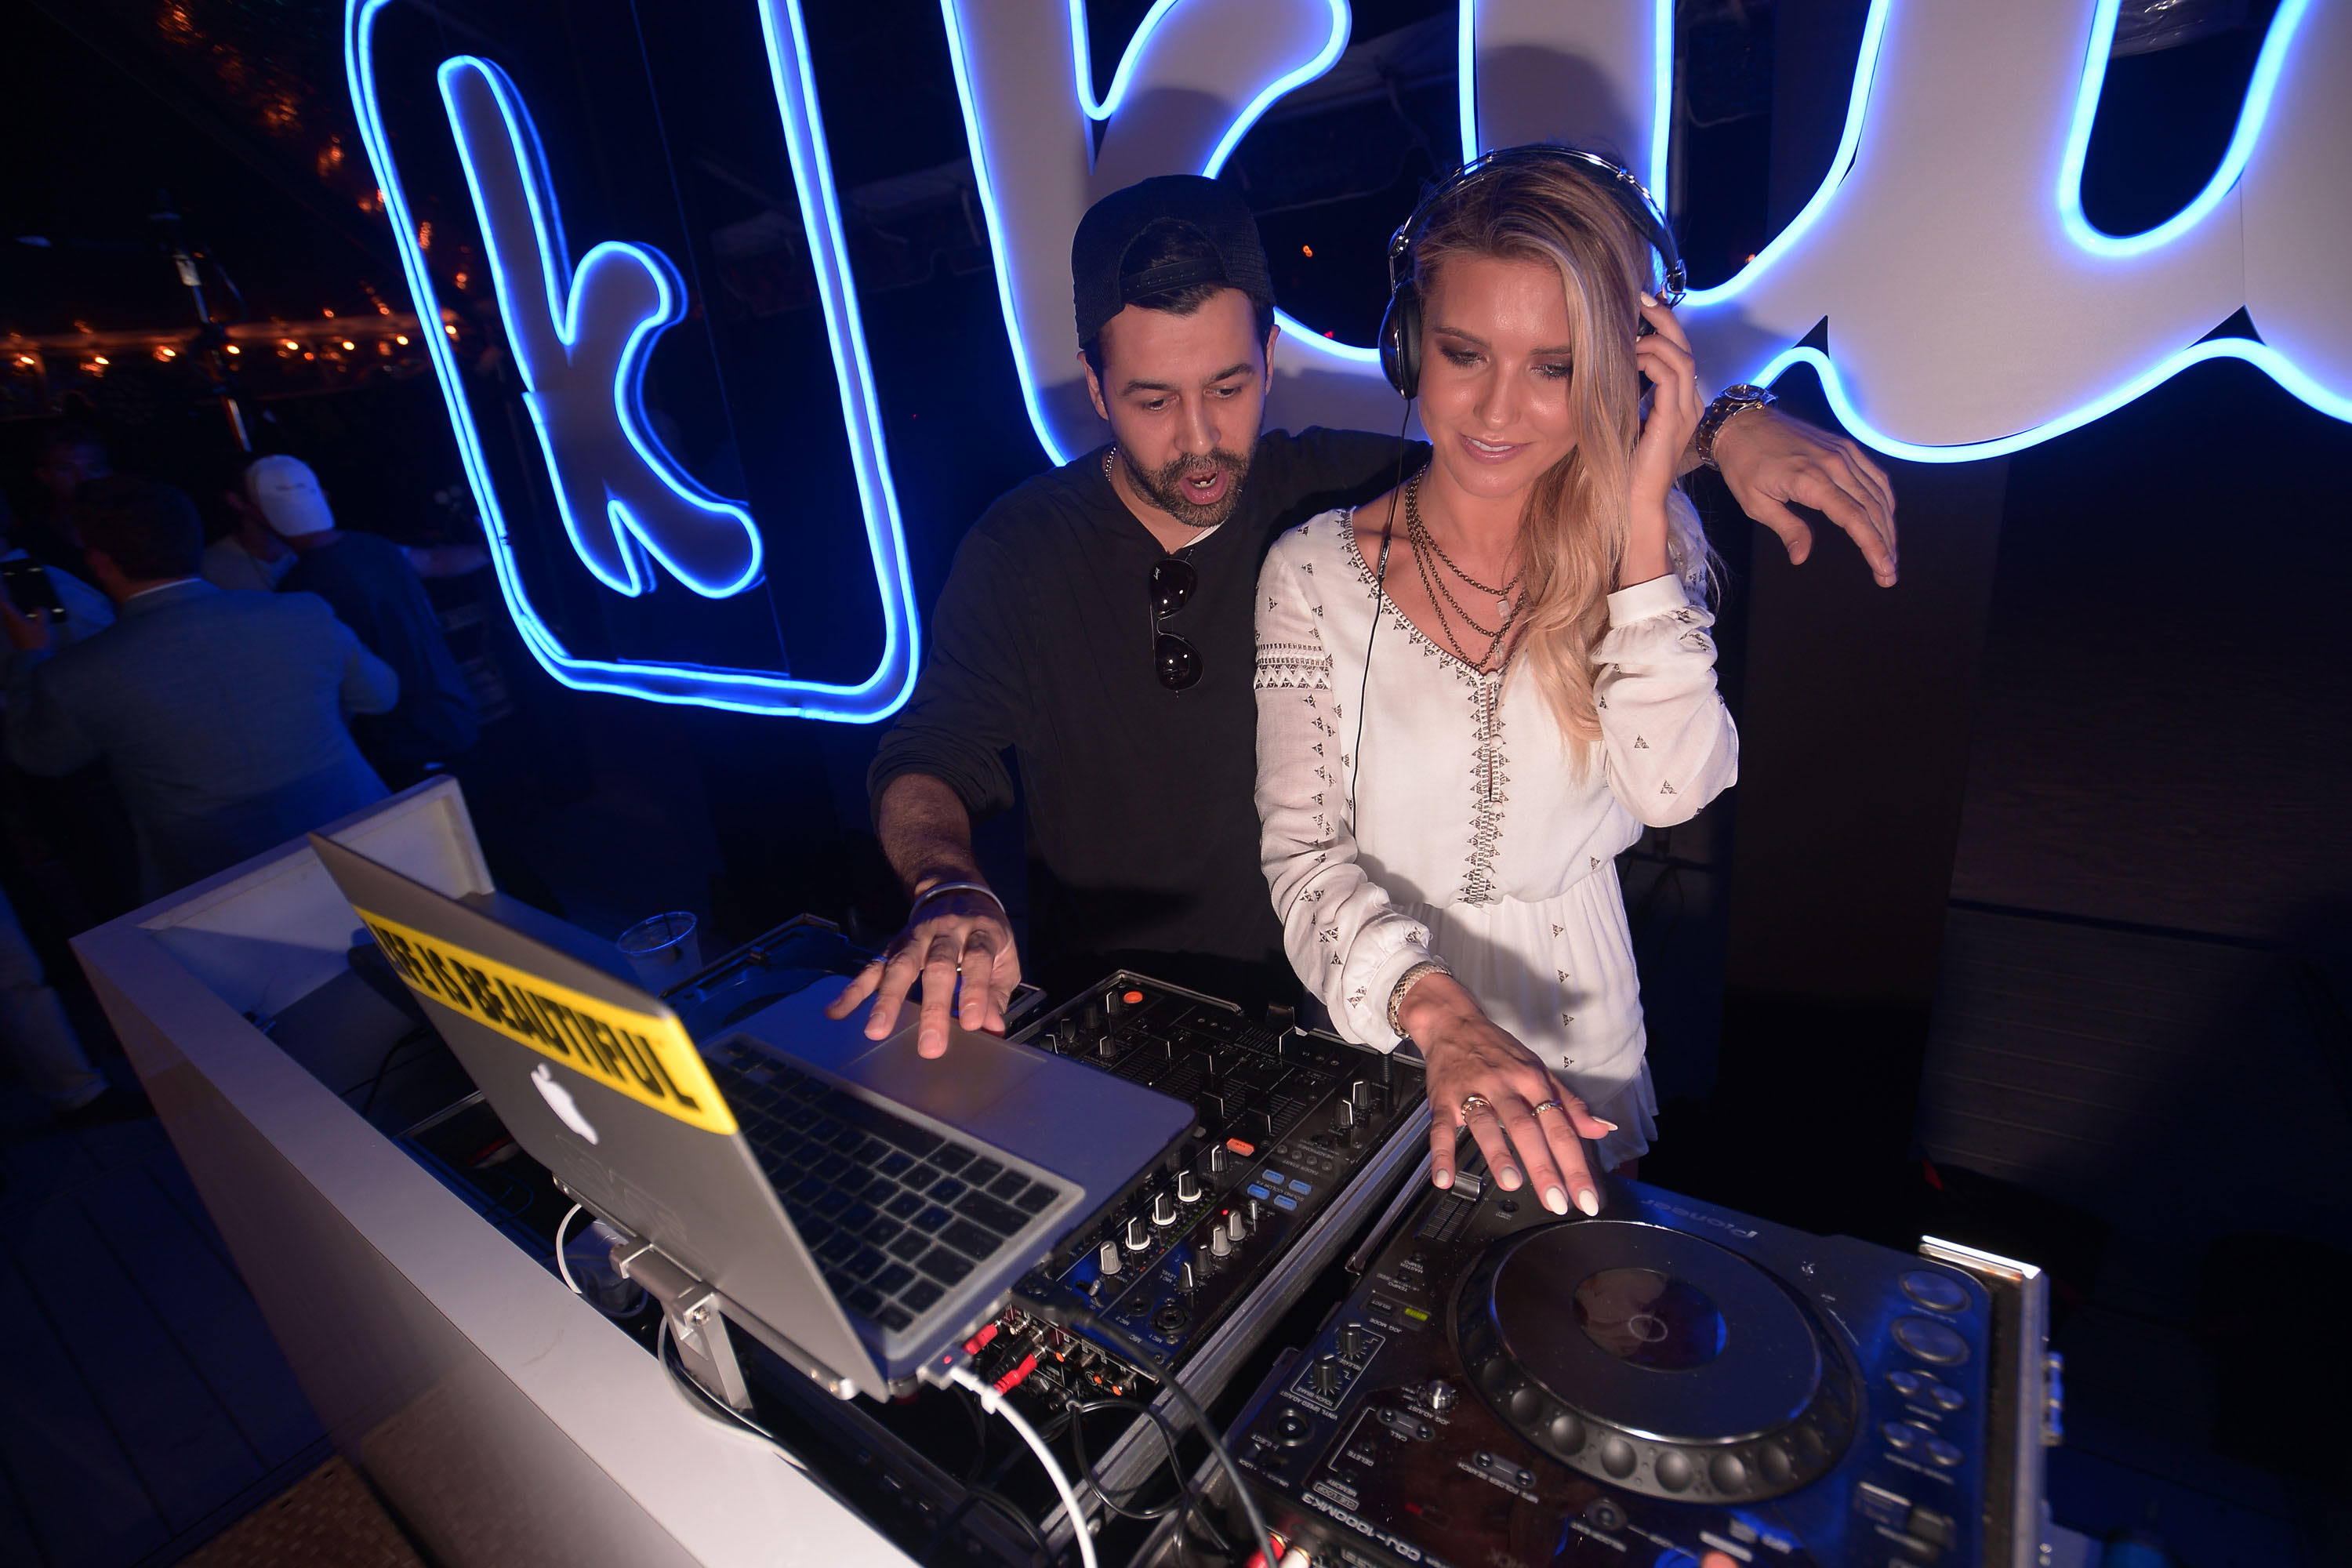 Audrina Patridge shows off her DJ skills at the Klique App South Florida Launch Party at the Raleigh Hotel in Miami on June 6. (WorldRedEye.com)